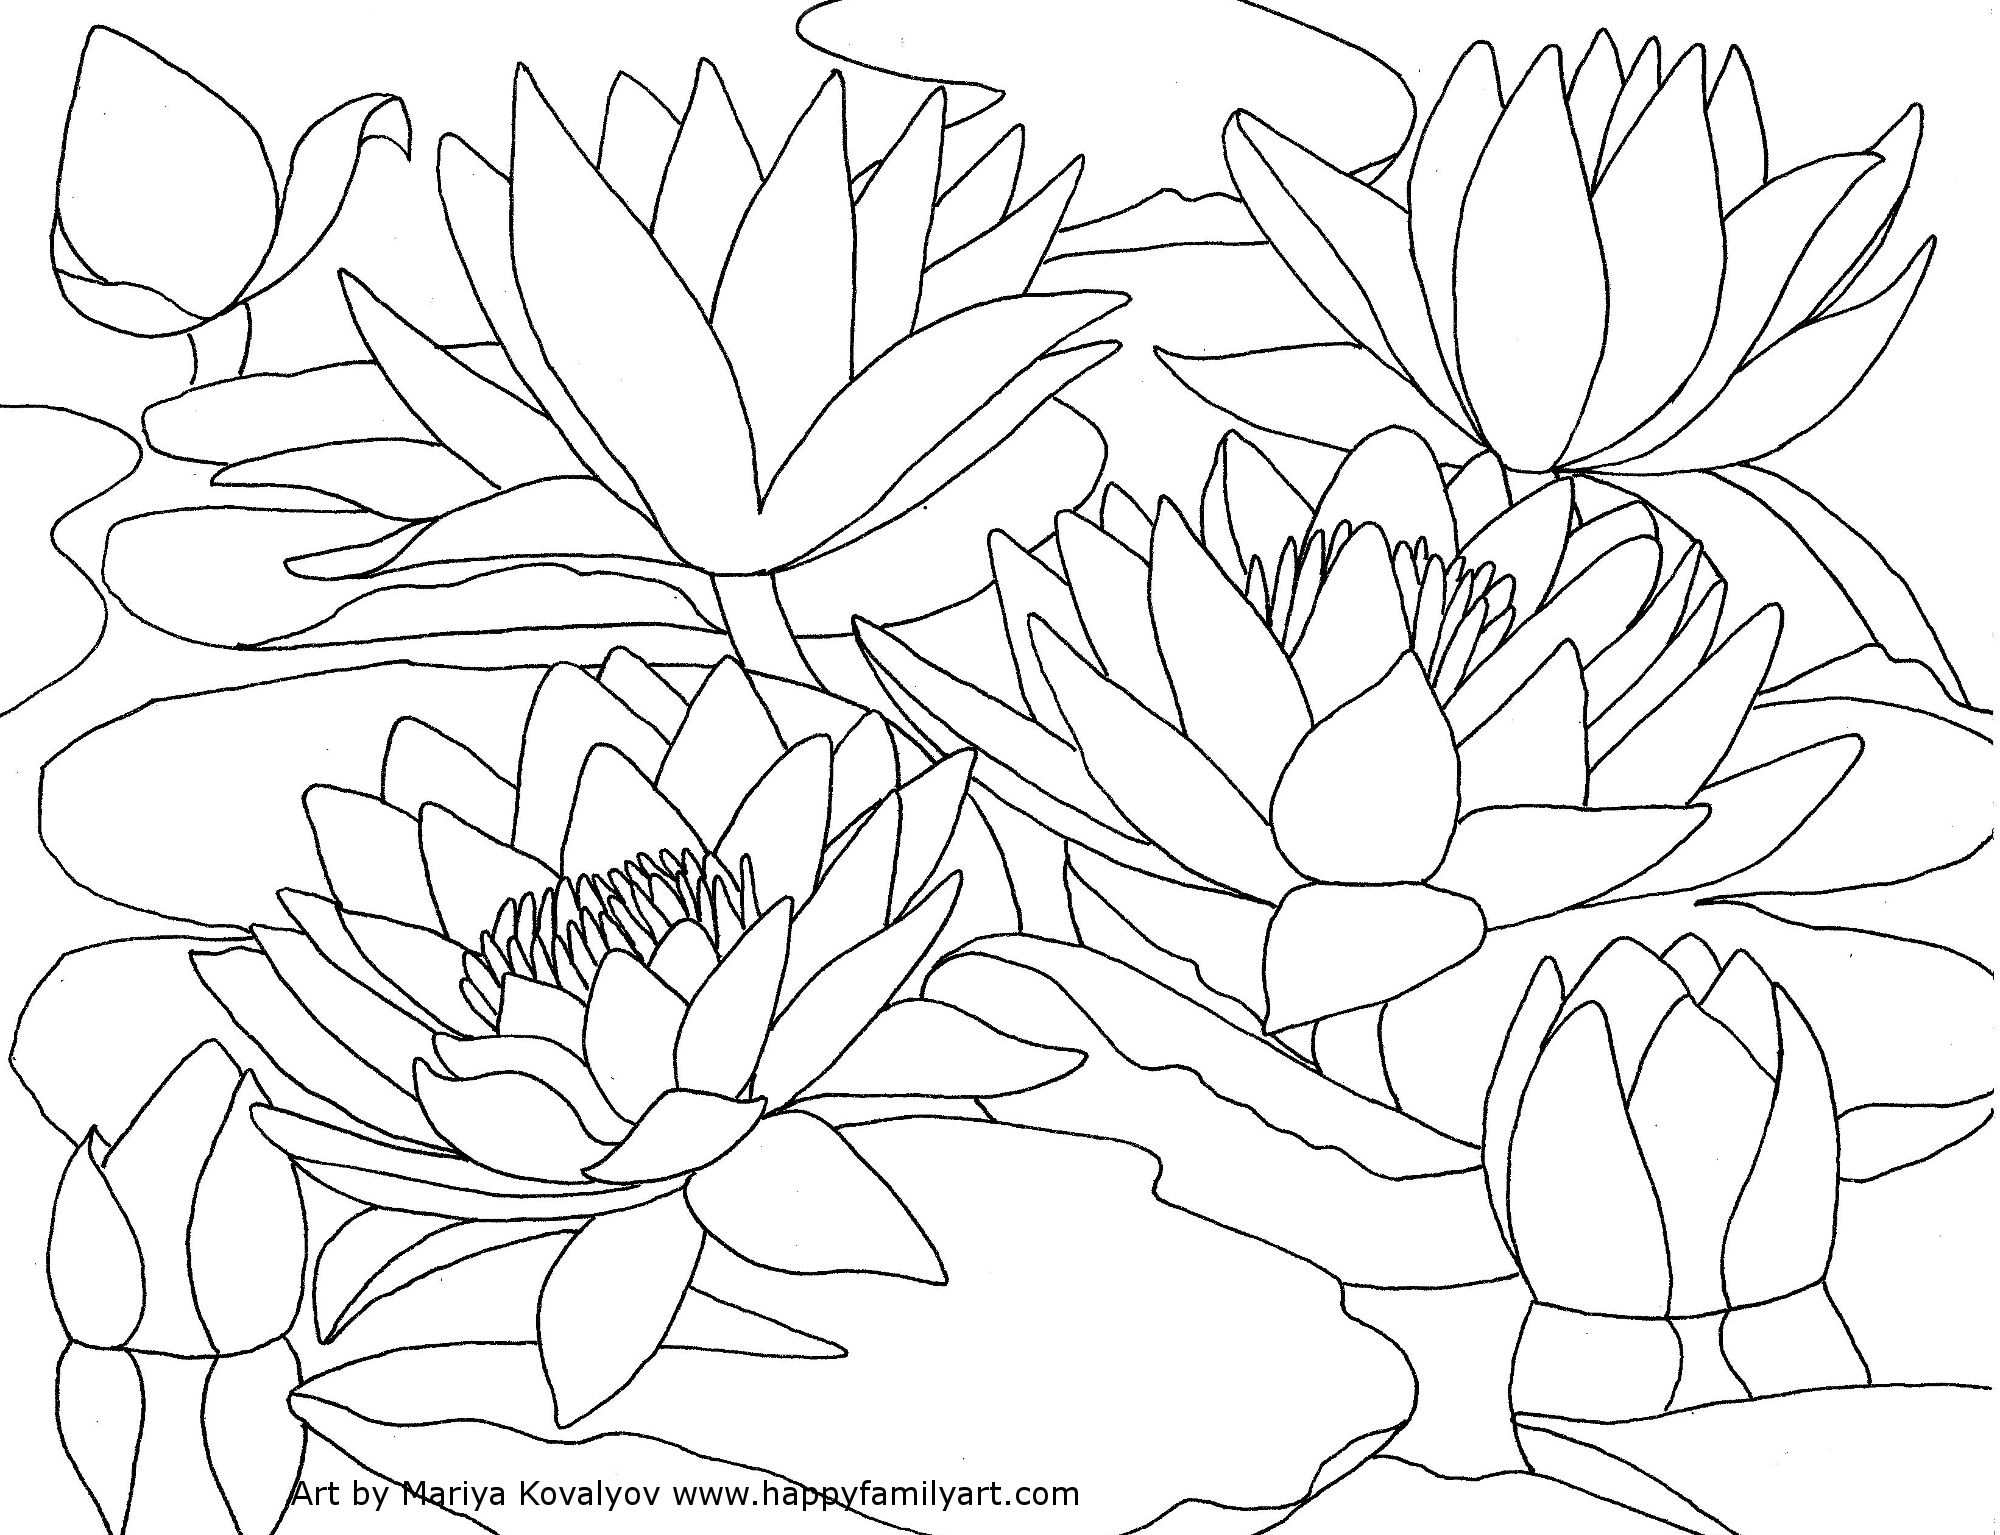 Free coloring pages august - Flower Coloring Pages Fuchsia Water Lily Digi Stamps Super Coloring Pages Flowers Coloring Book Page Of